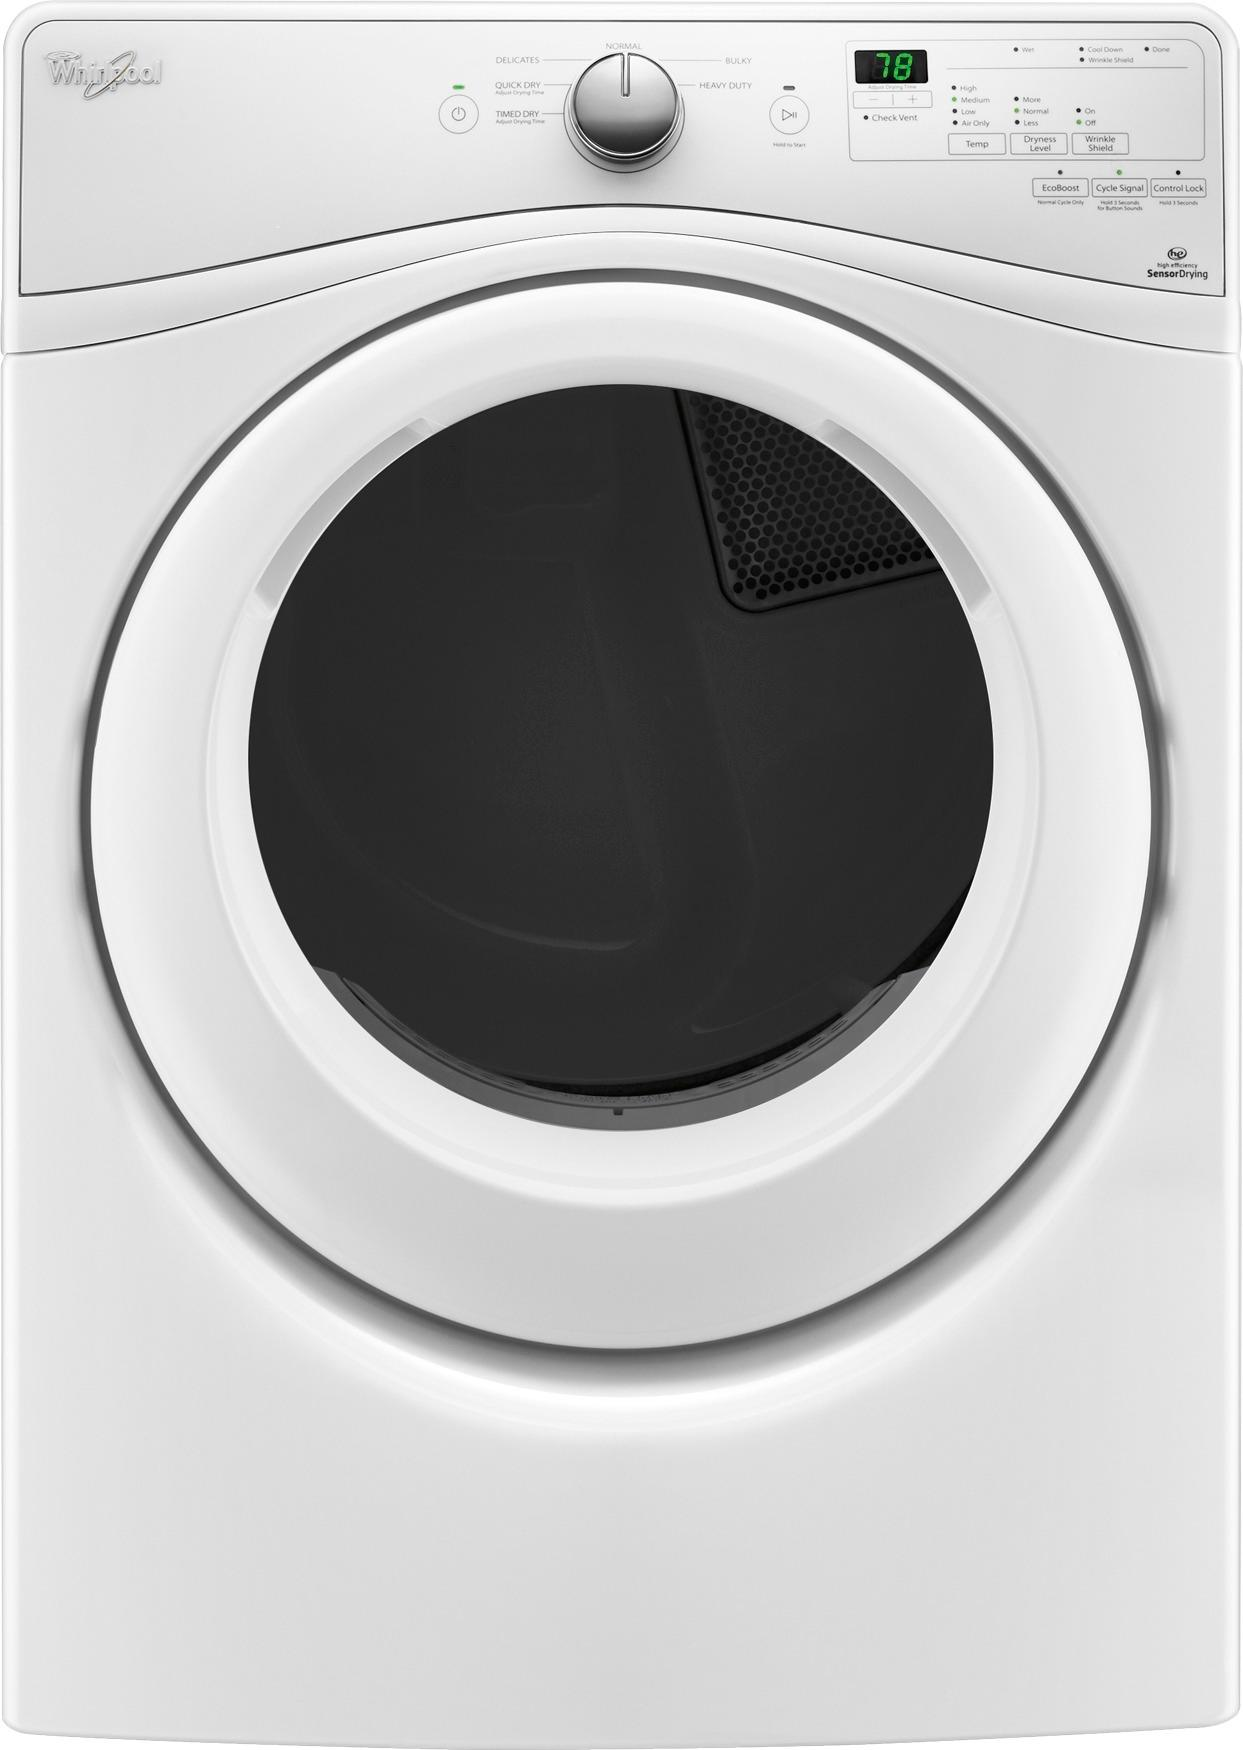 Washer And Dryer Calgary Whirlpool 7 4 Cu Ft 6 Cycle Electric Dryer White